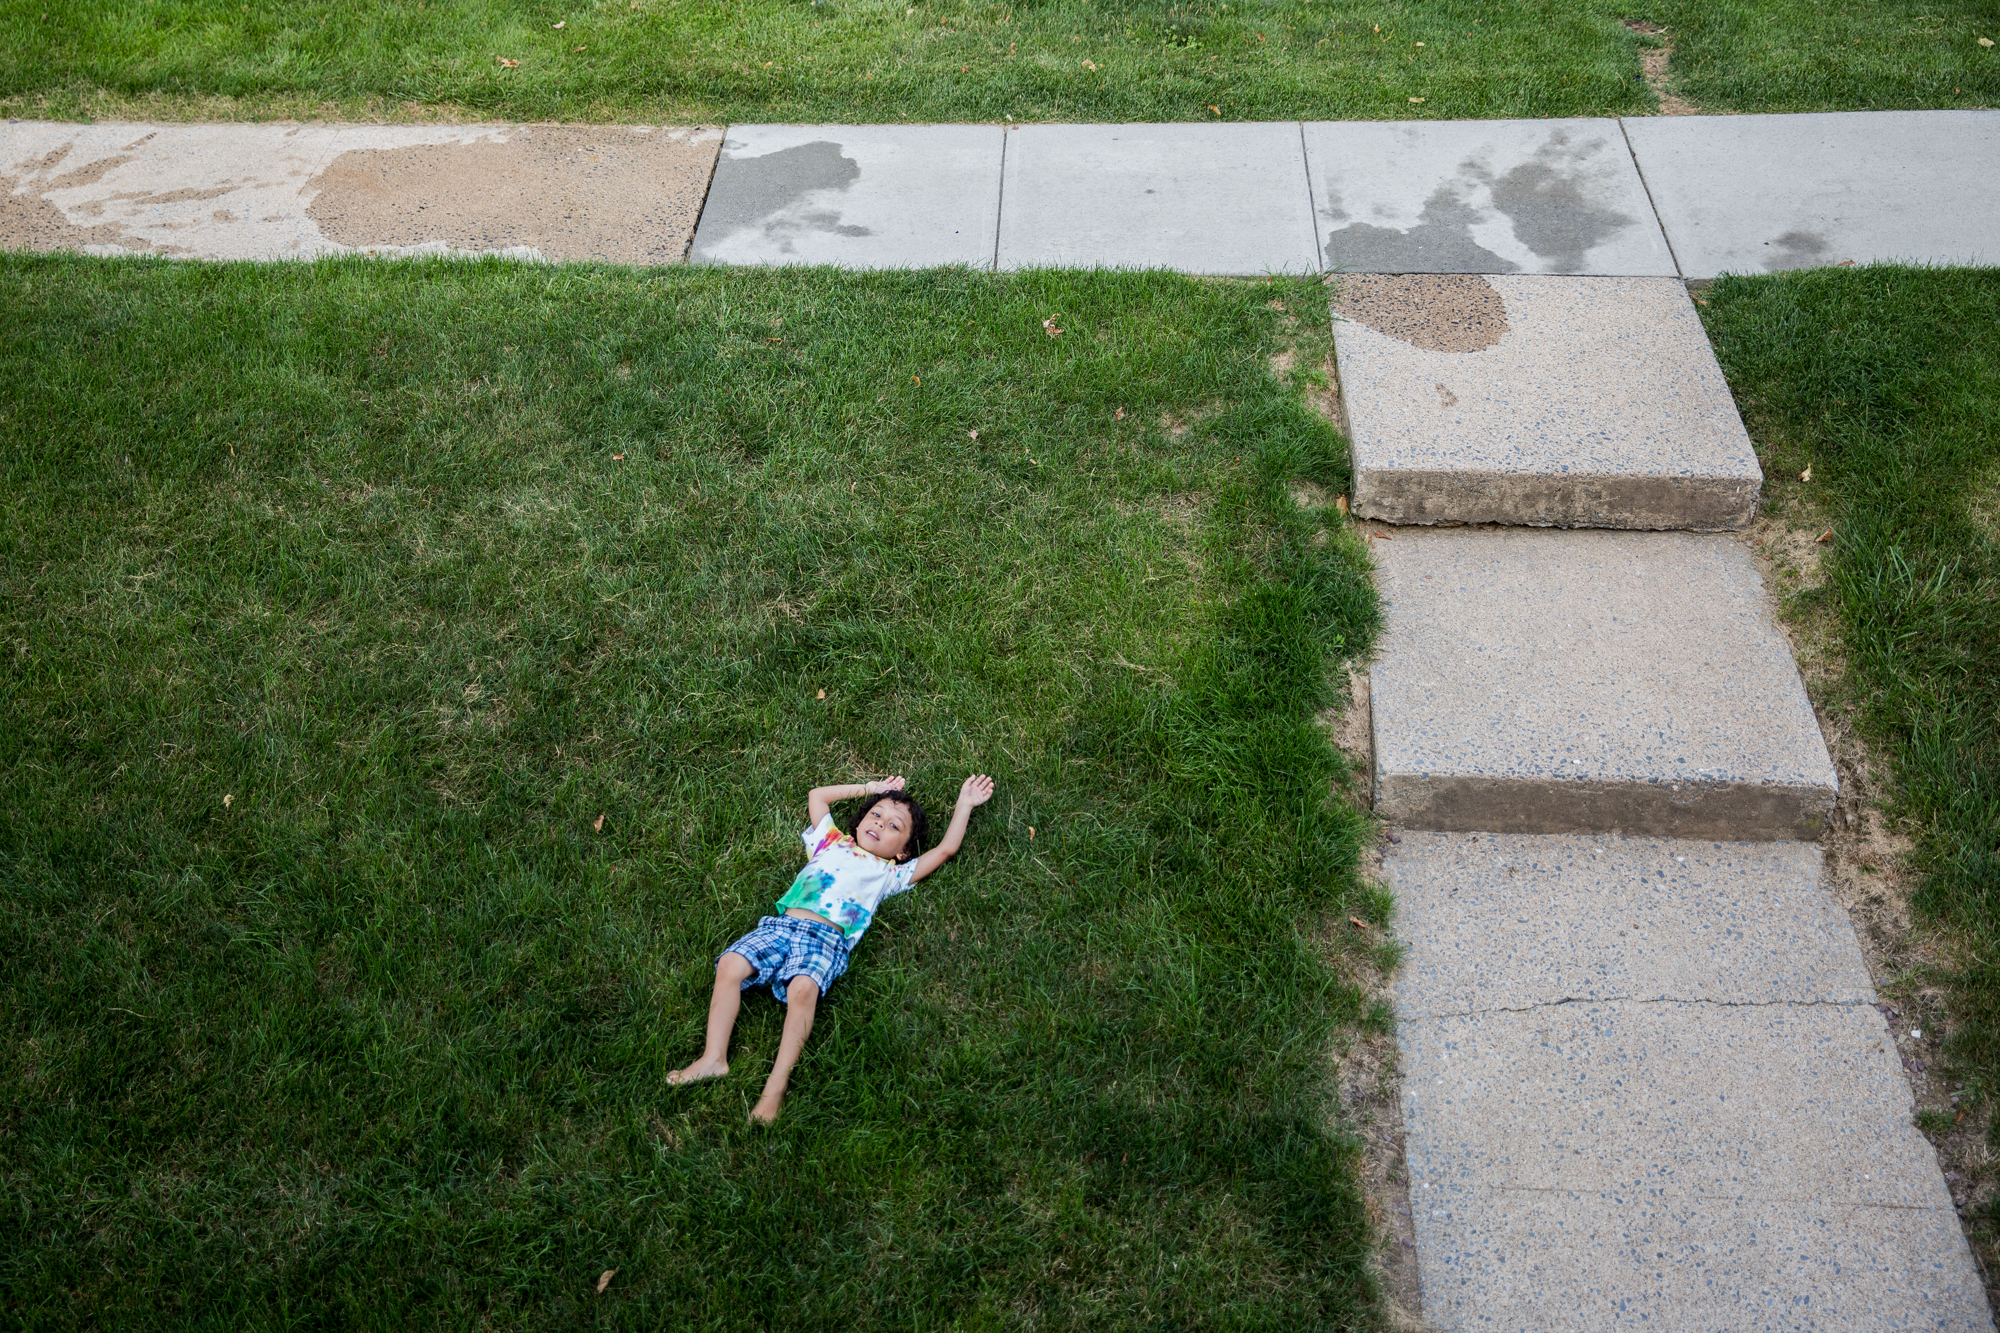 Gamal lies in the grass after a water balloon fight with his sister outside of their apartment in Camp Hill.